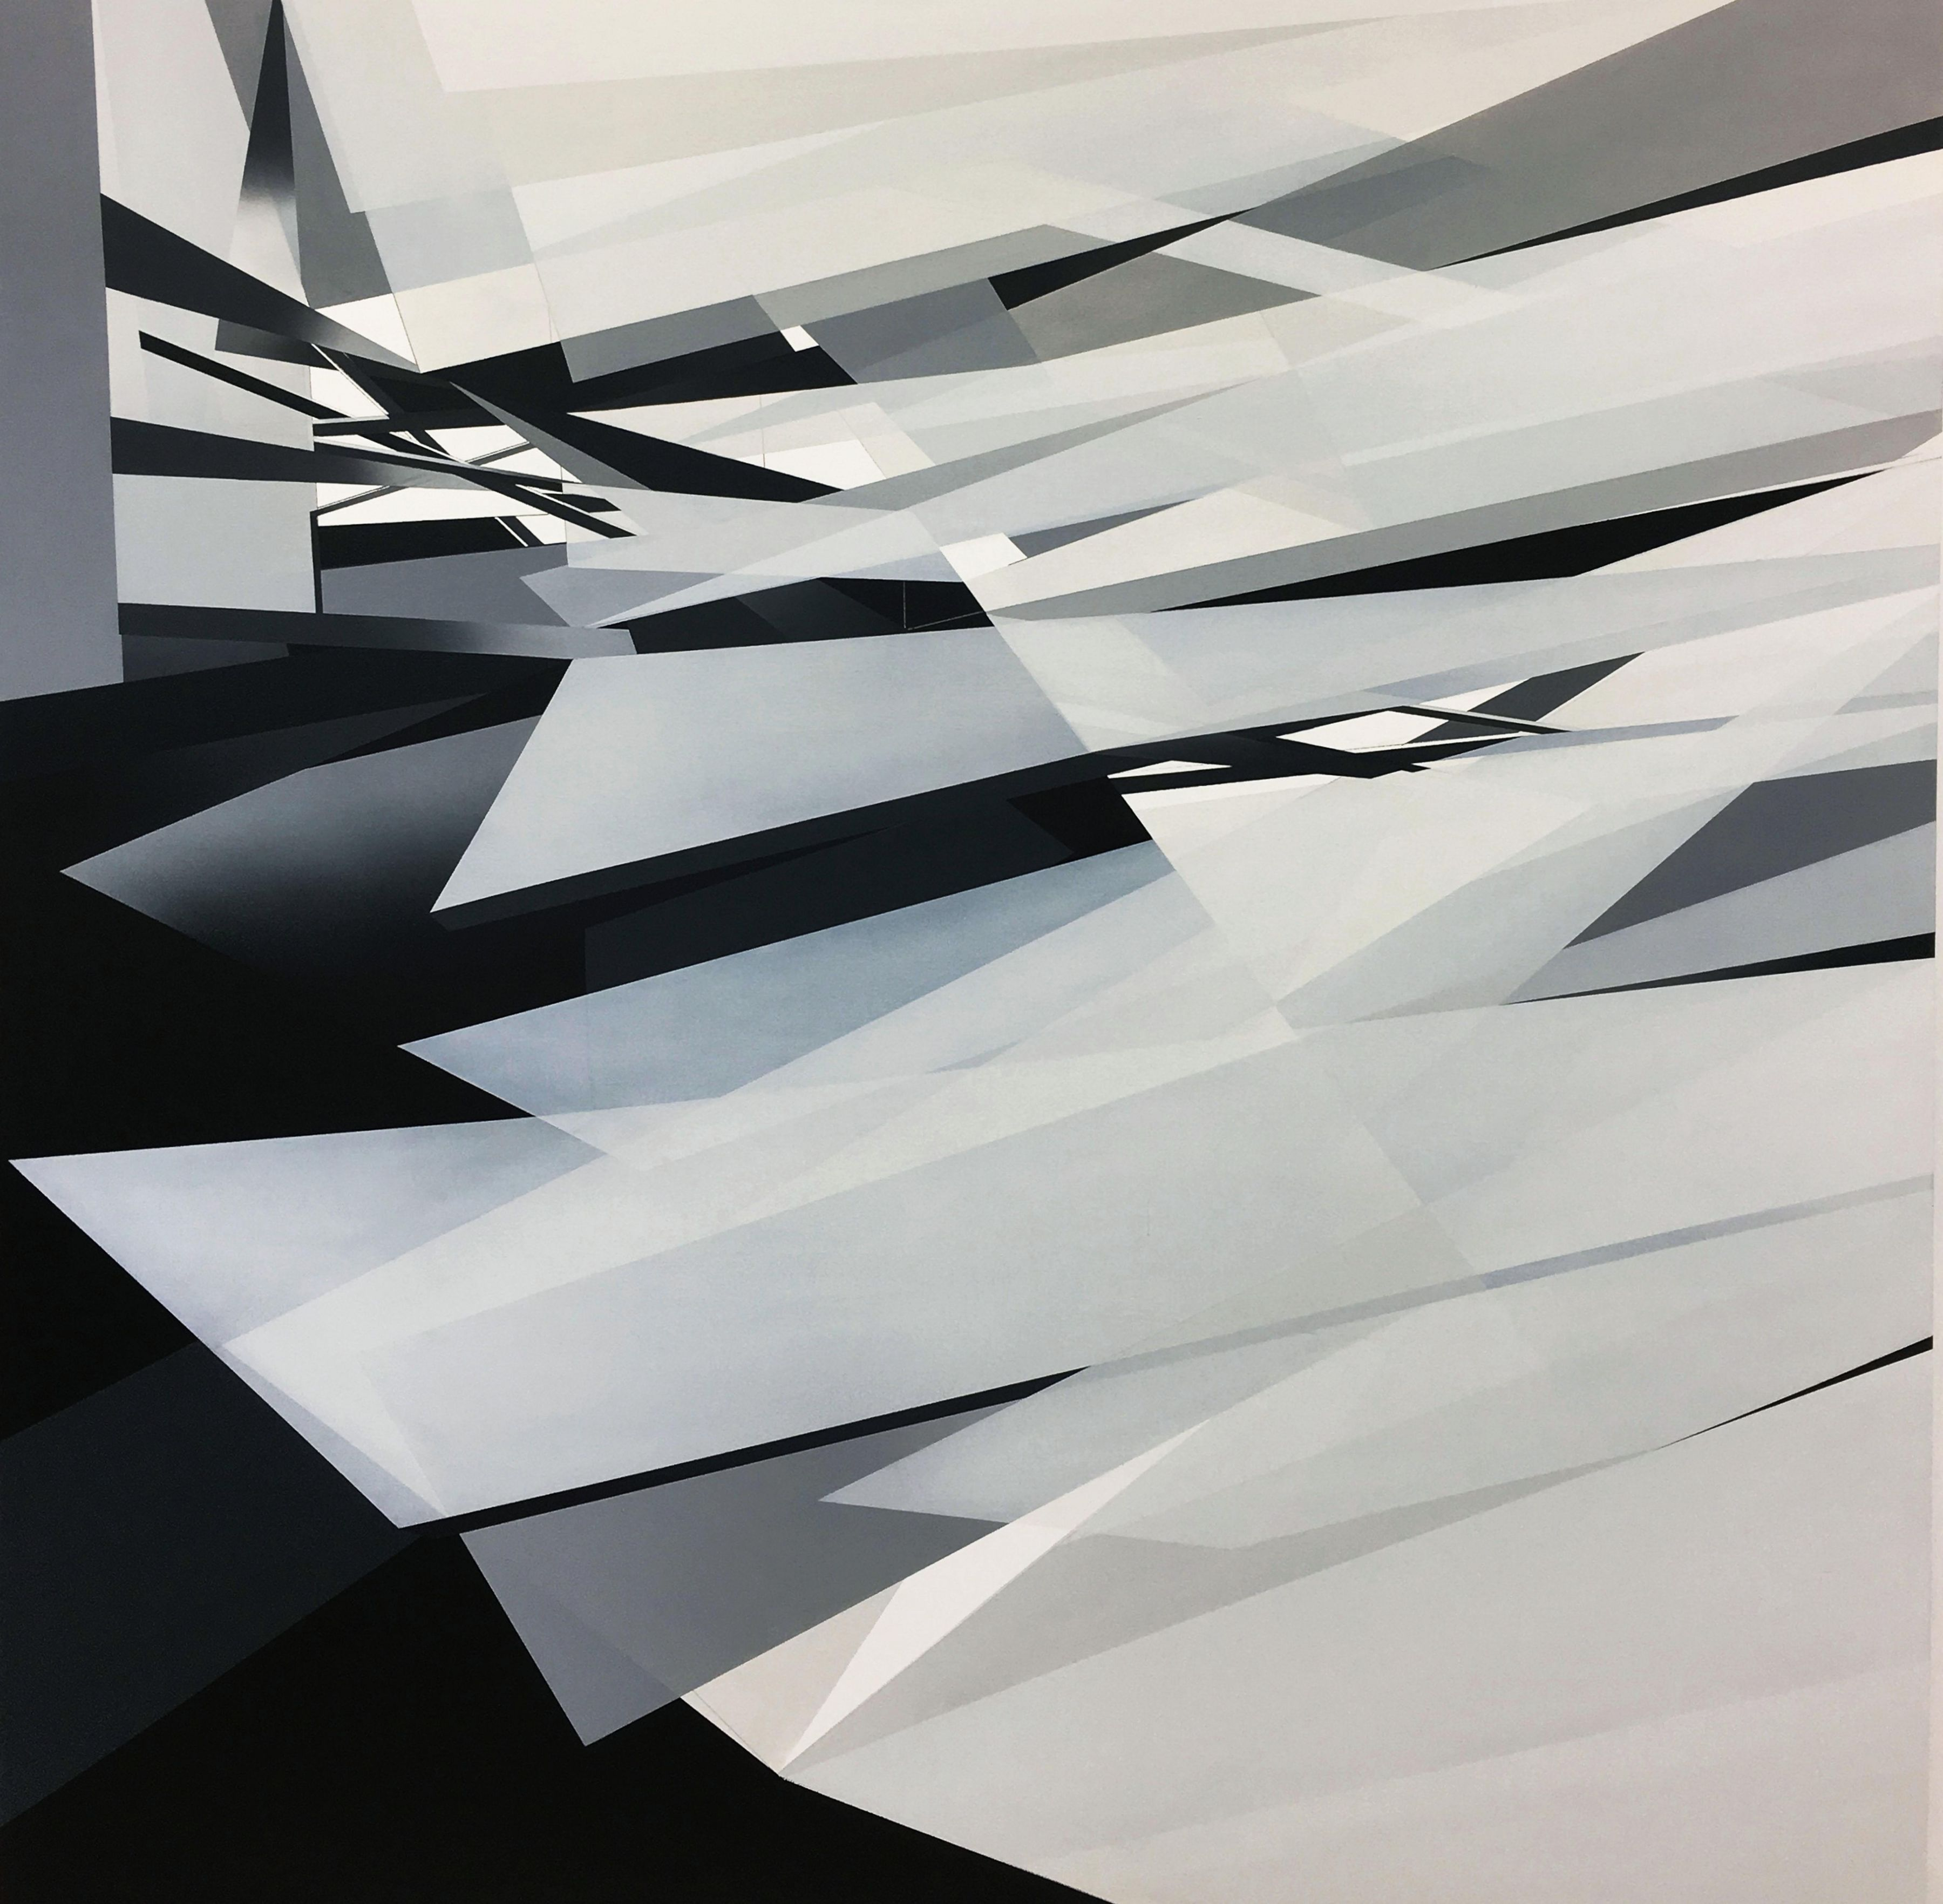 MARNA SHOPOFF, Layers and Planes, 2018